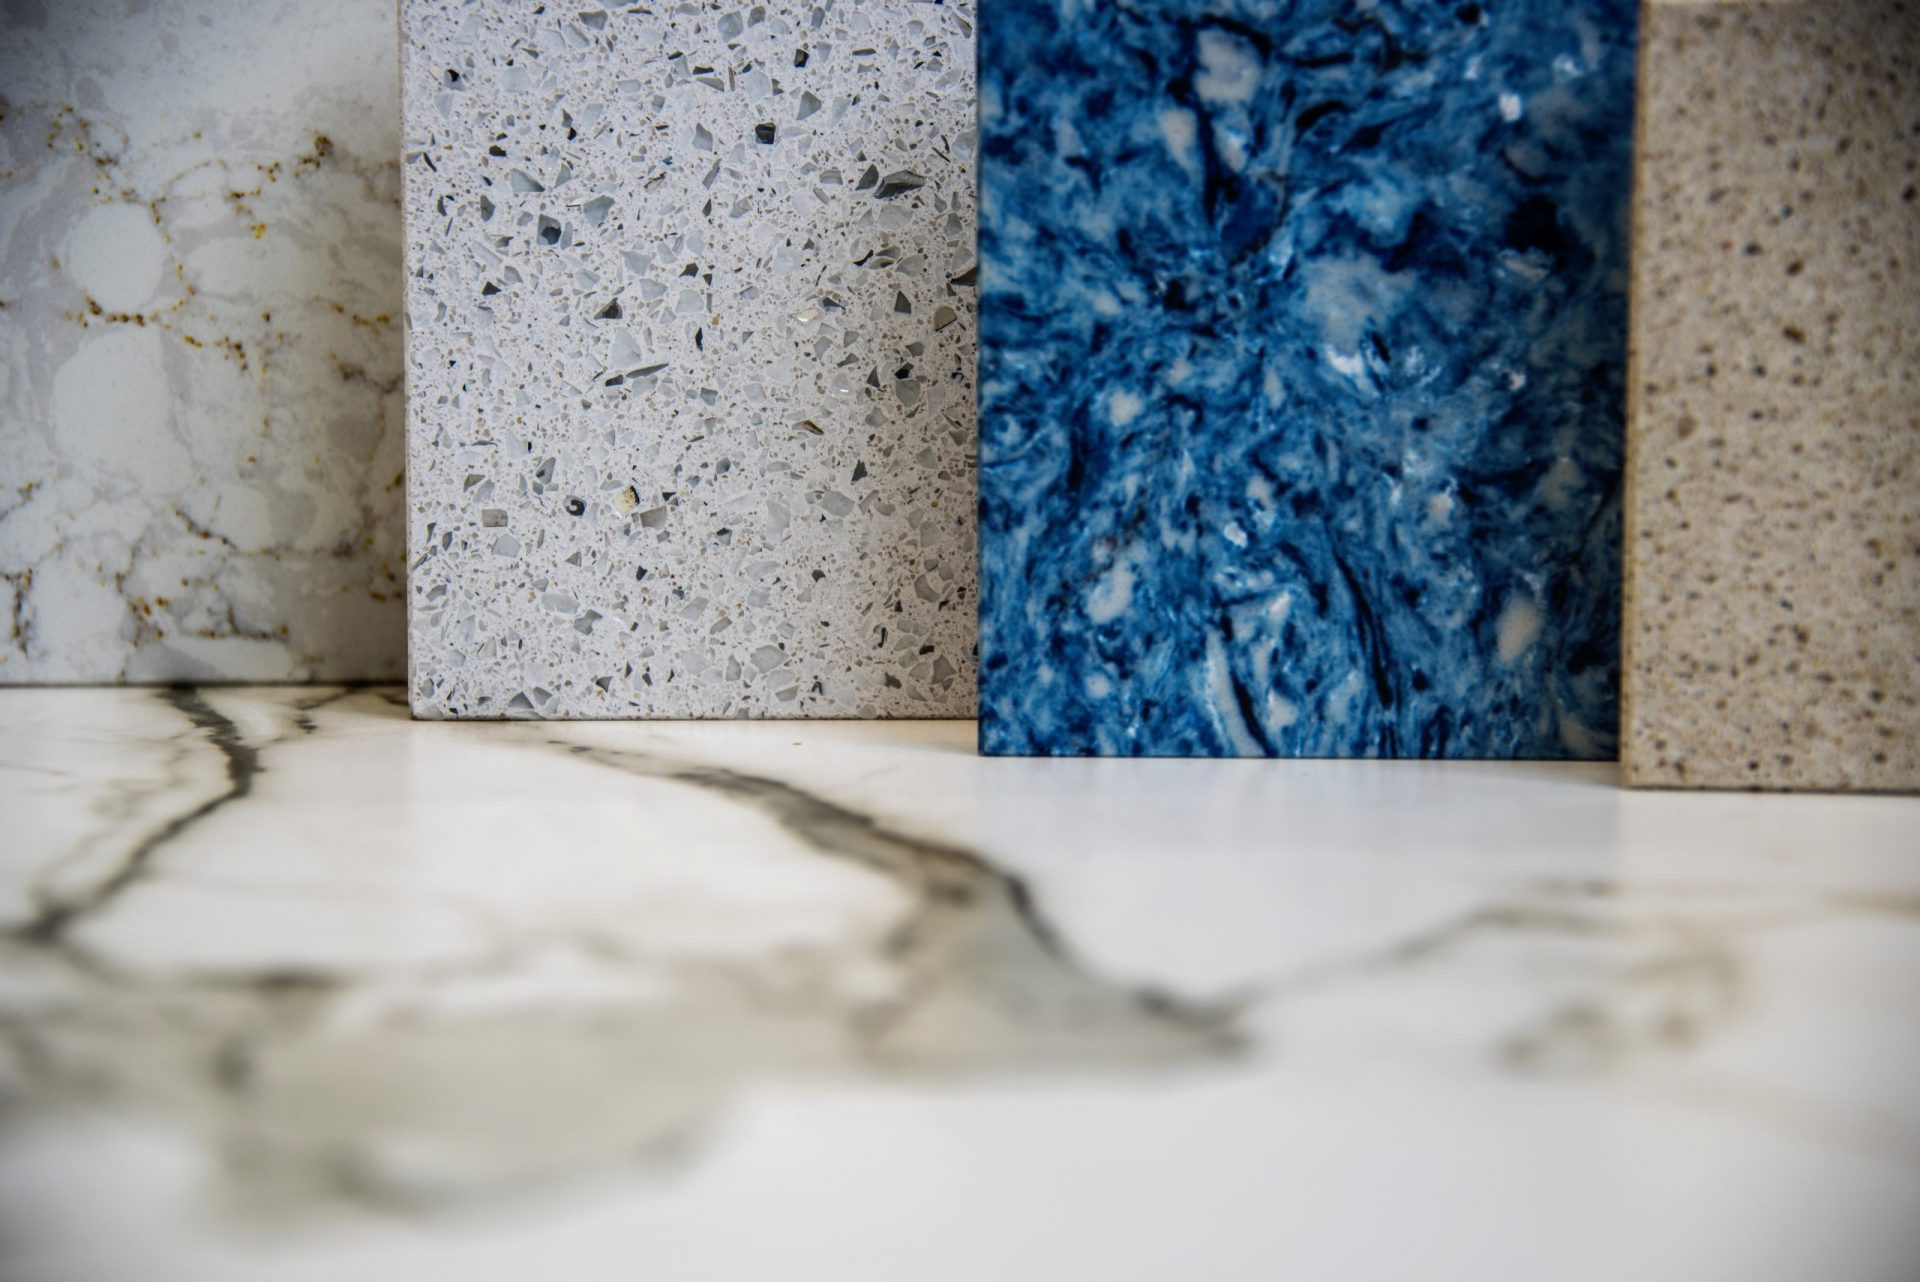 Which stones are the best countertop options for your budget?